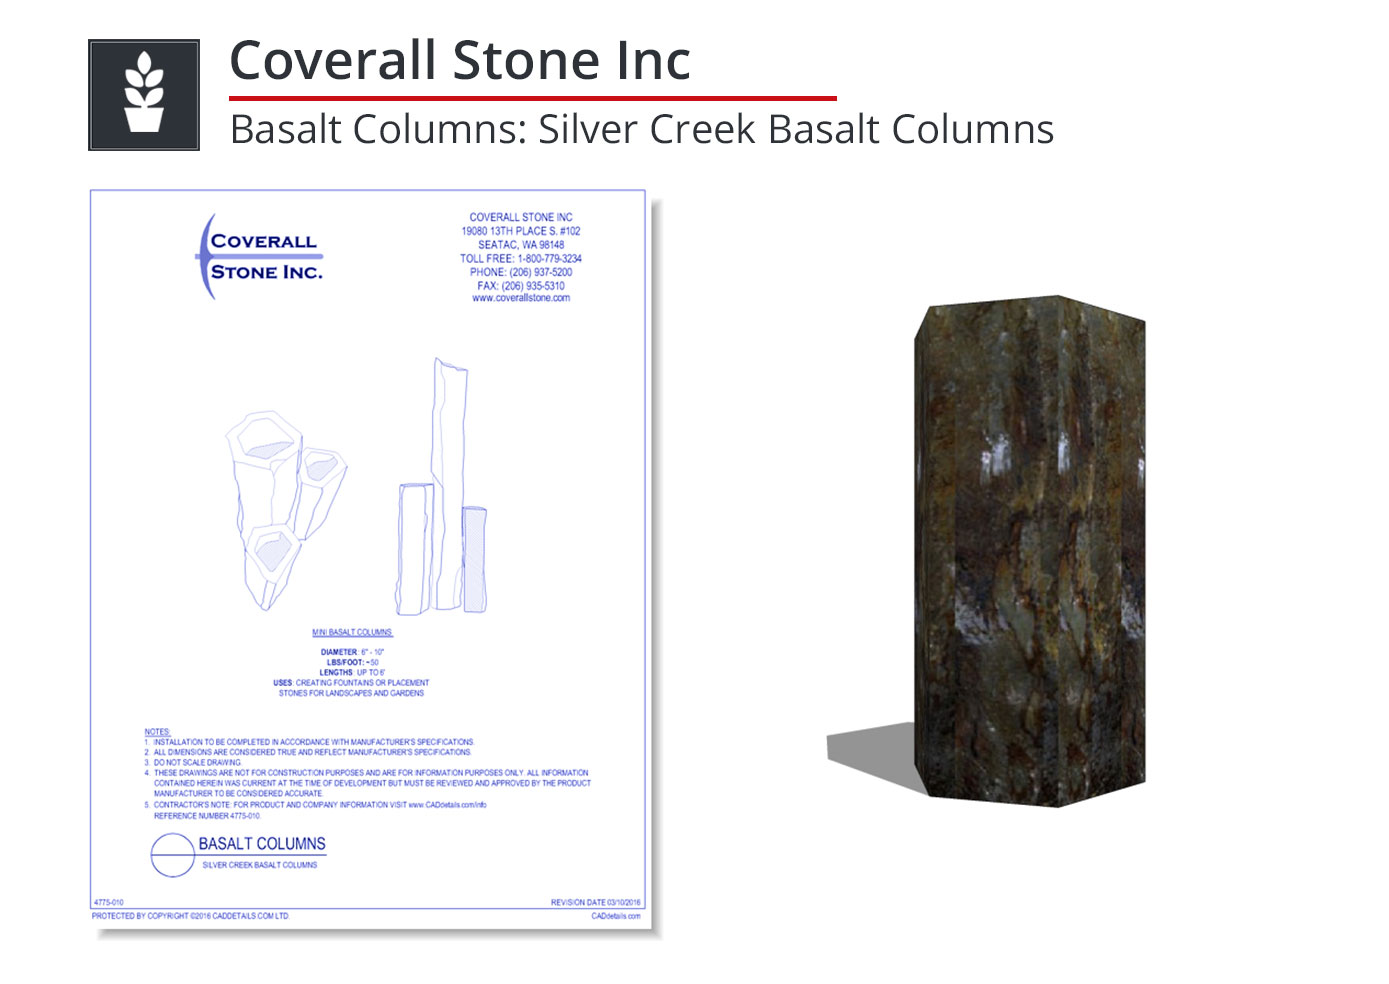 Coverall-Stone-Inc-Silver-Creek-Basalt-Columns-CAD-Drawing.jpg